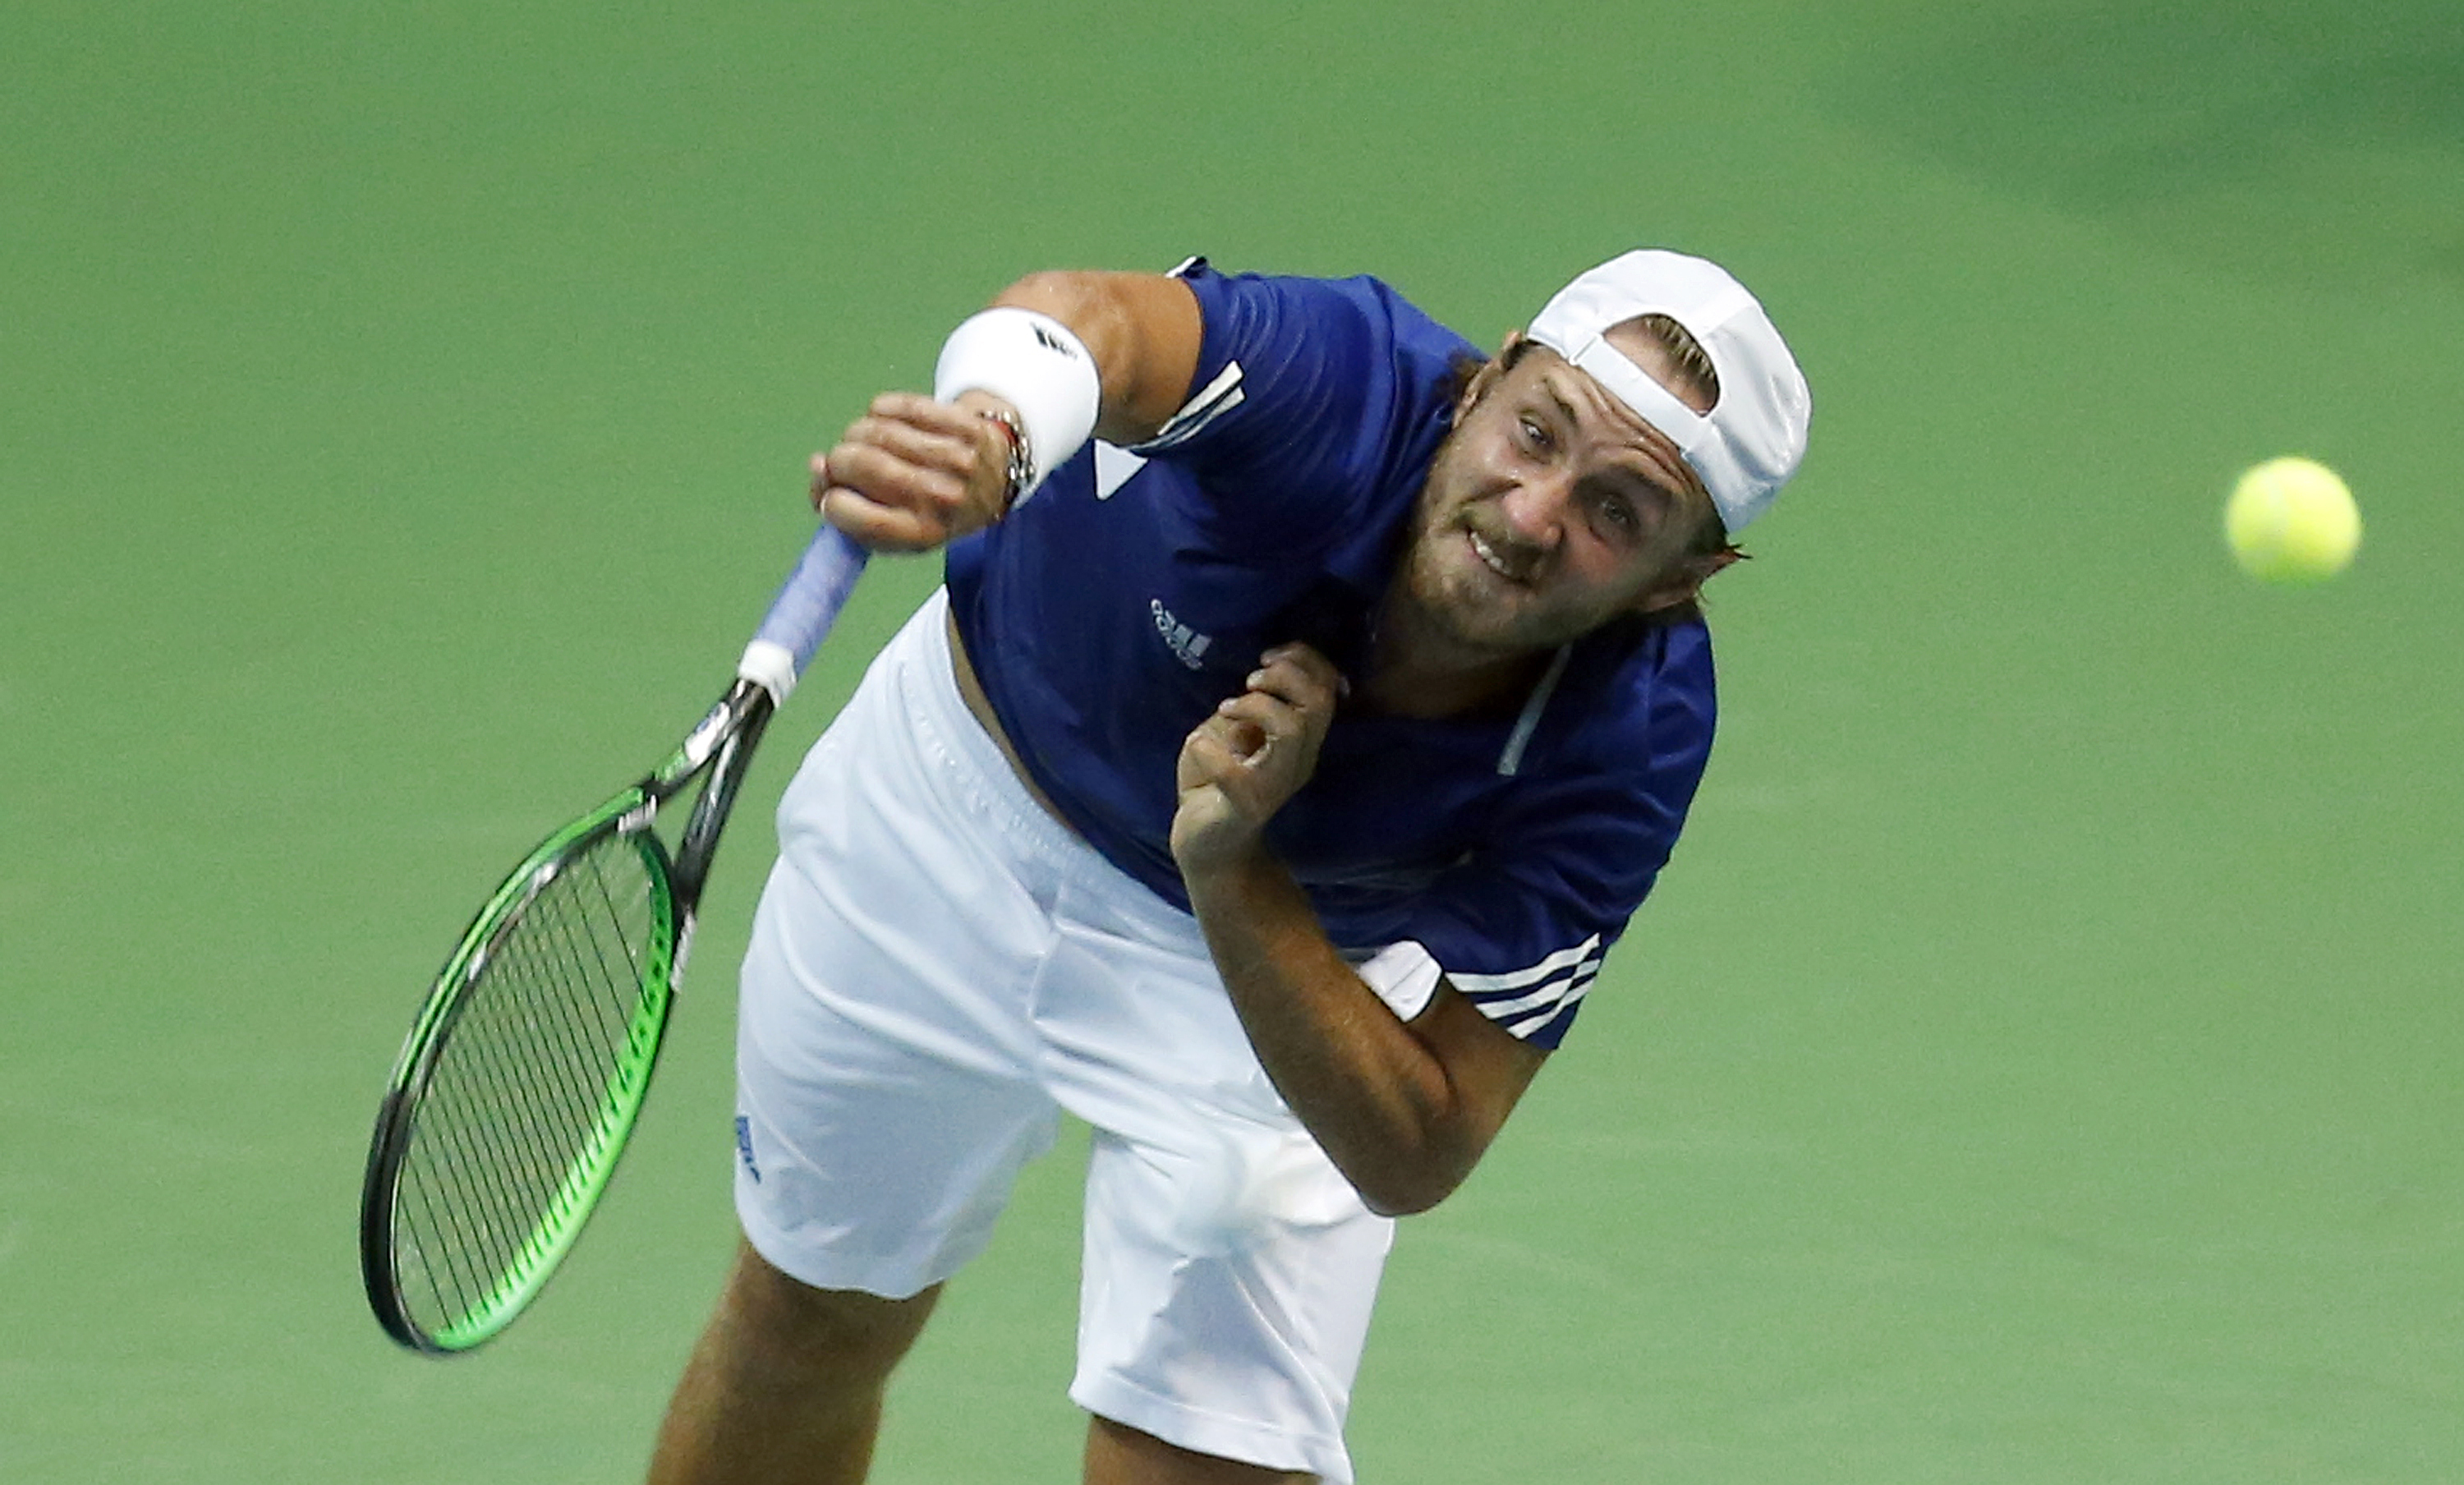 France's Lucas Pouille serves to Croatia's Marin Cilic during the Davis Cup semifinal tennis match between Croatia and France, in Zadar, Croatia, Friday, Sept. 16, 2016. (AP Photo/Darko Bandic)